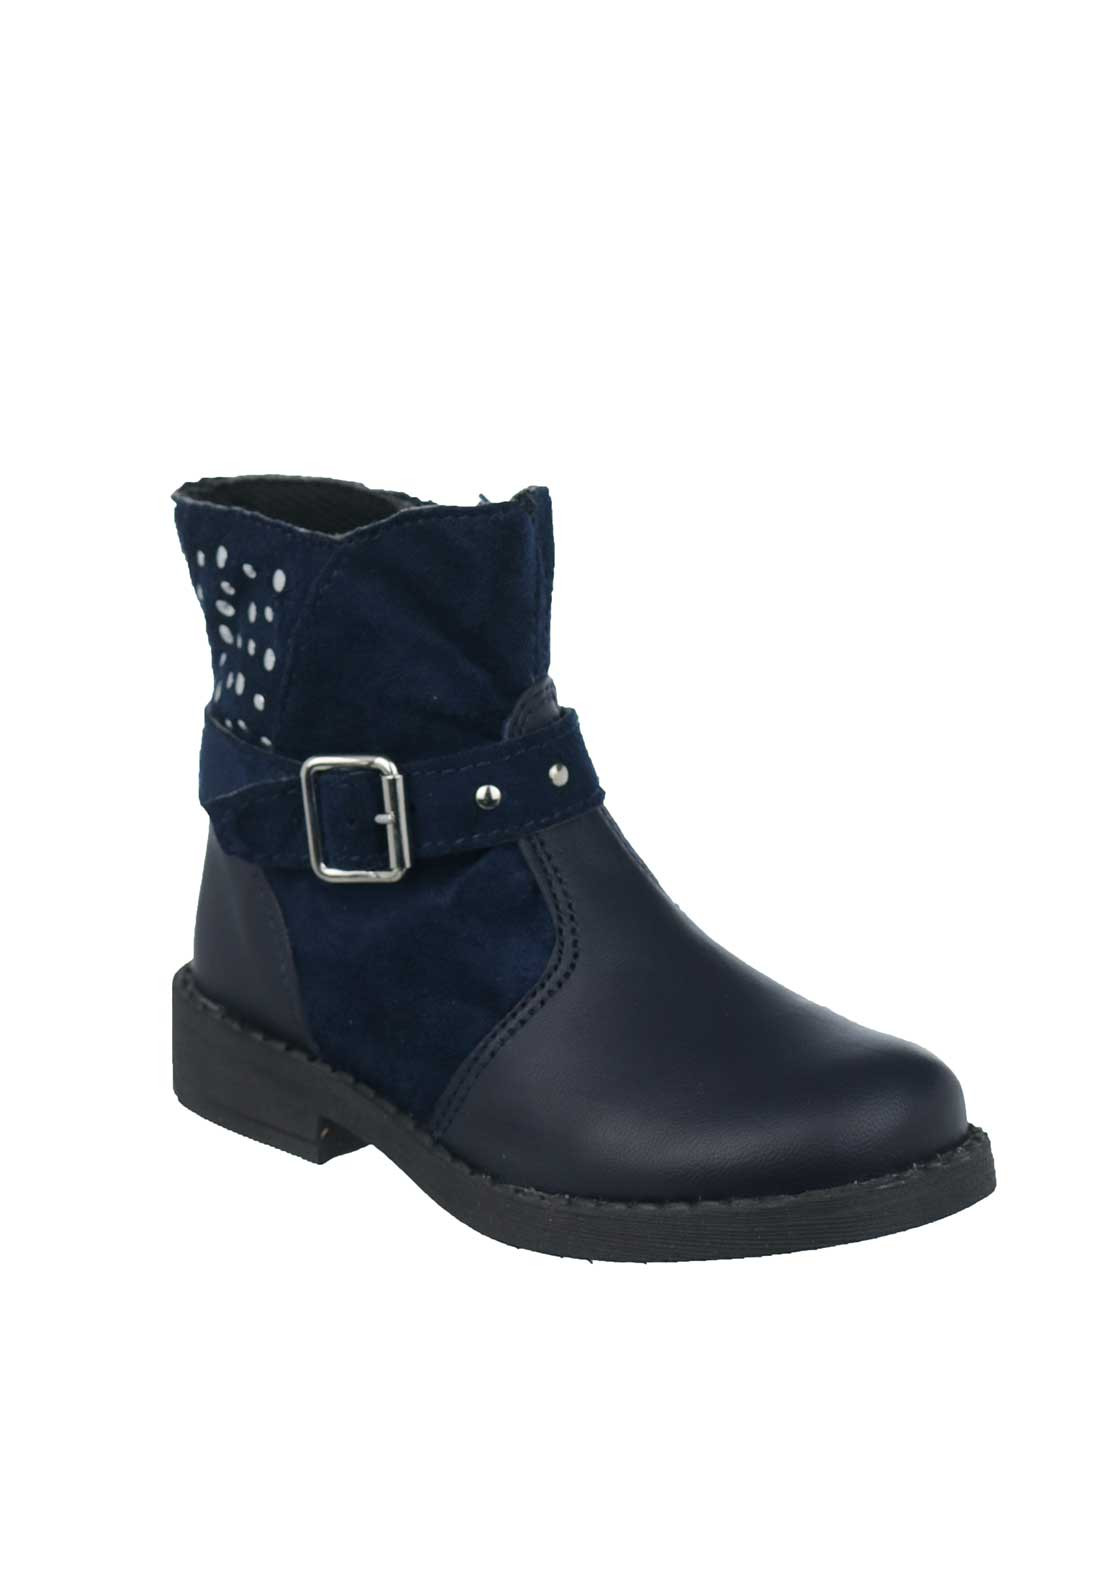 Dubarry Baby Girls Tava Stud Boots, Navy